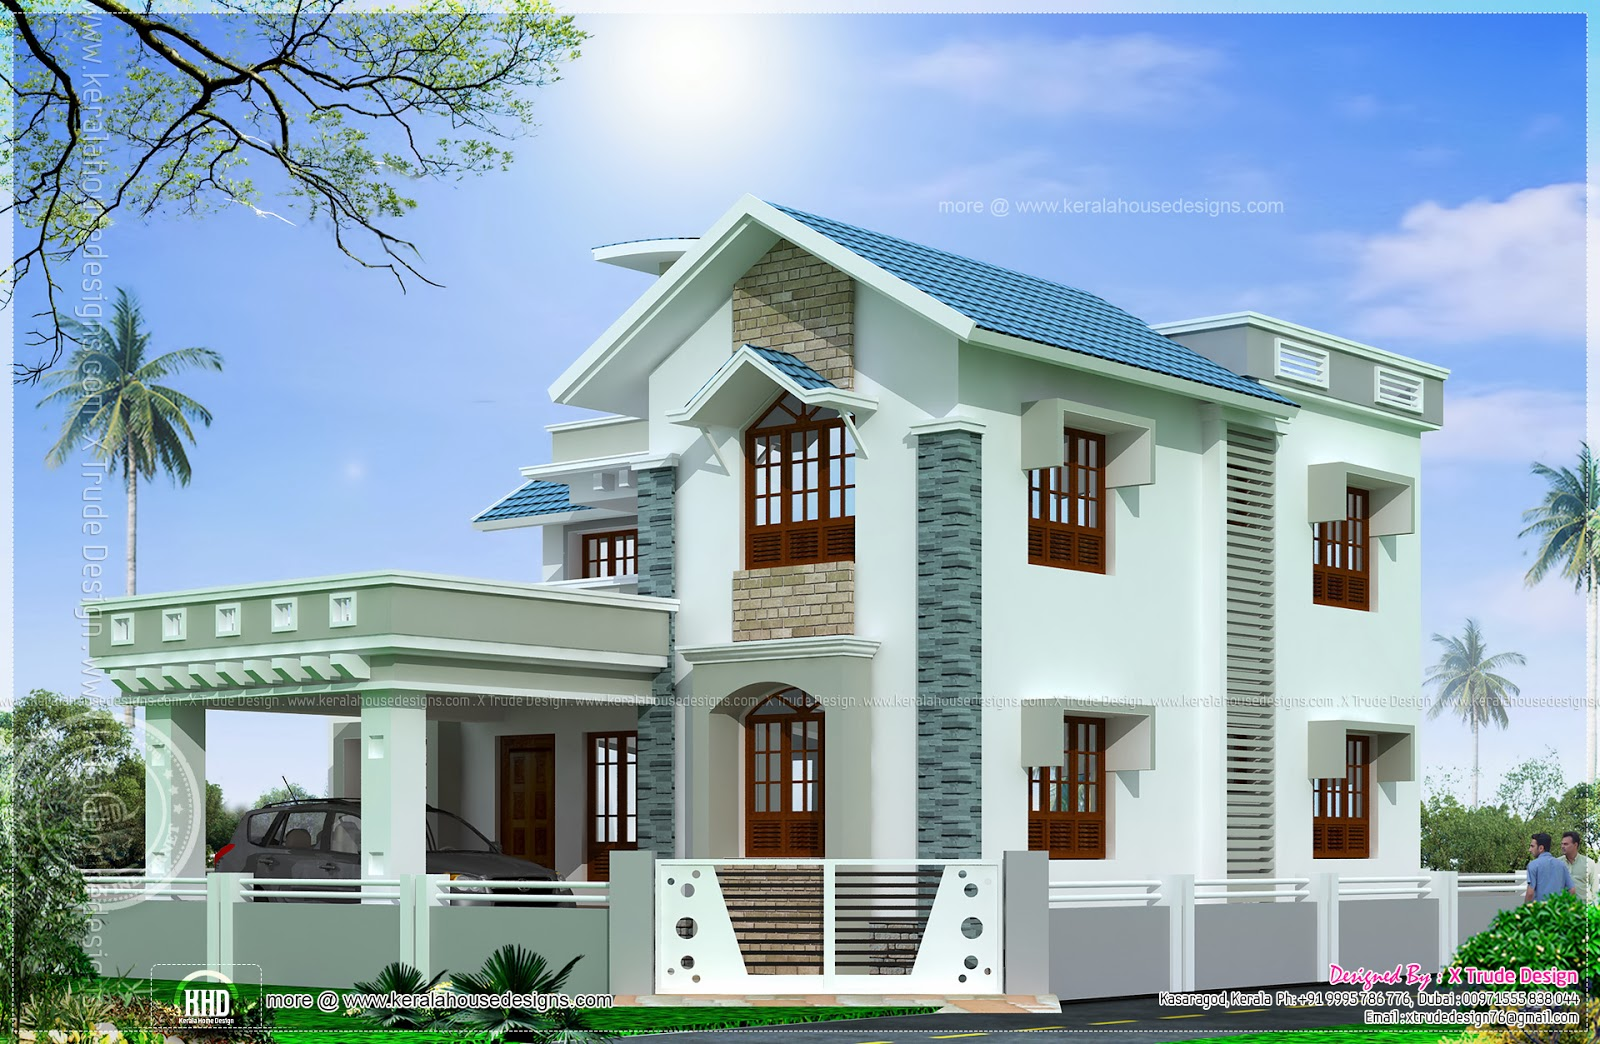 Beautiful 2138 square feet house elevation kerala home for House model design photos